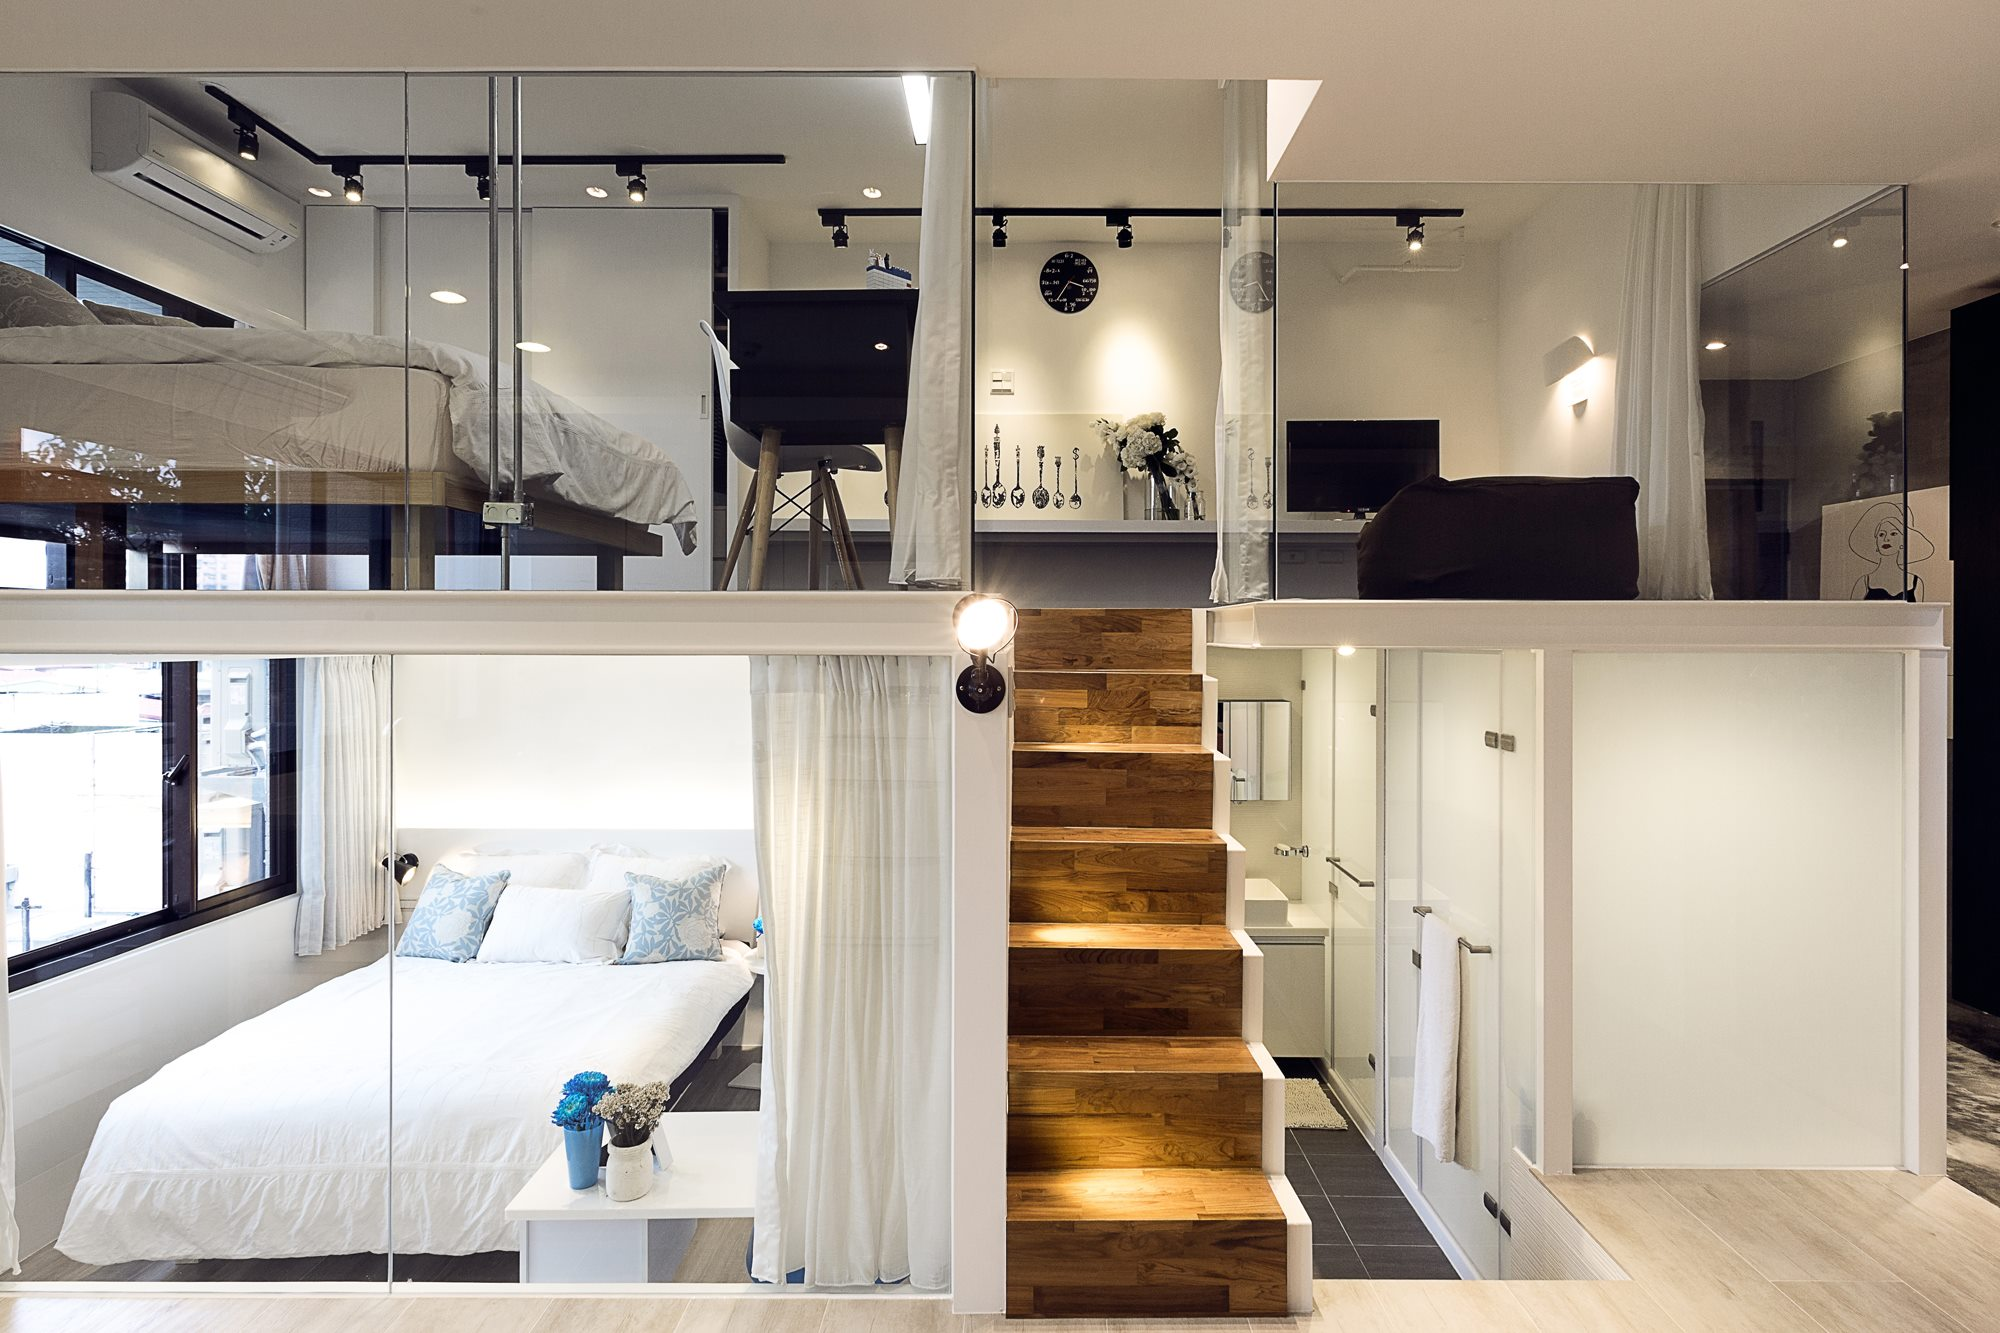 Lee s design a modern loft shared by two sisters for How to design a loft